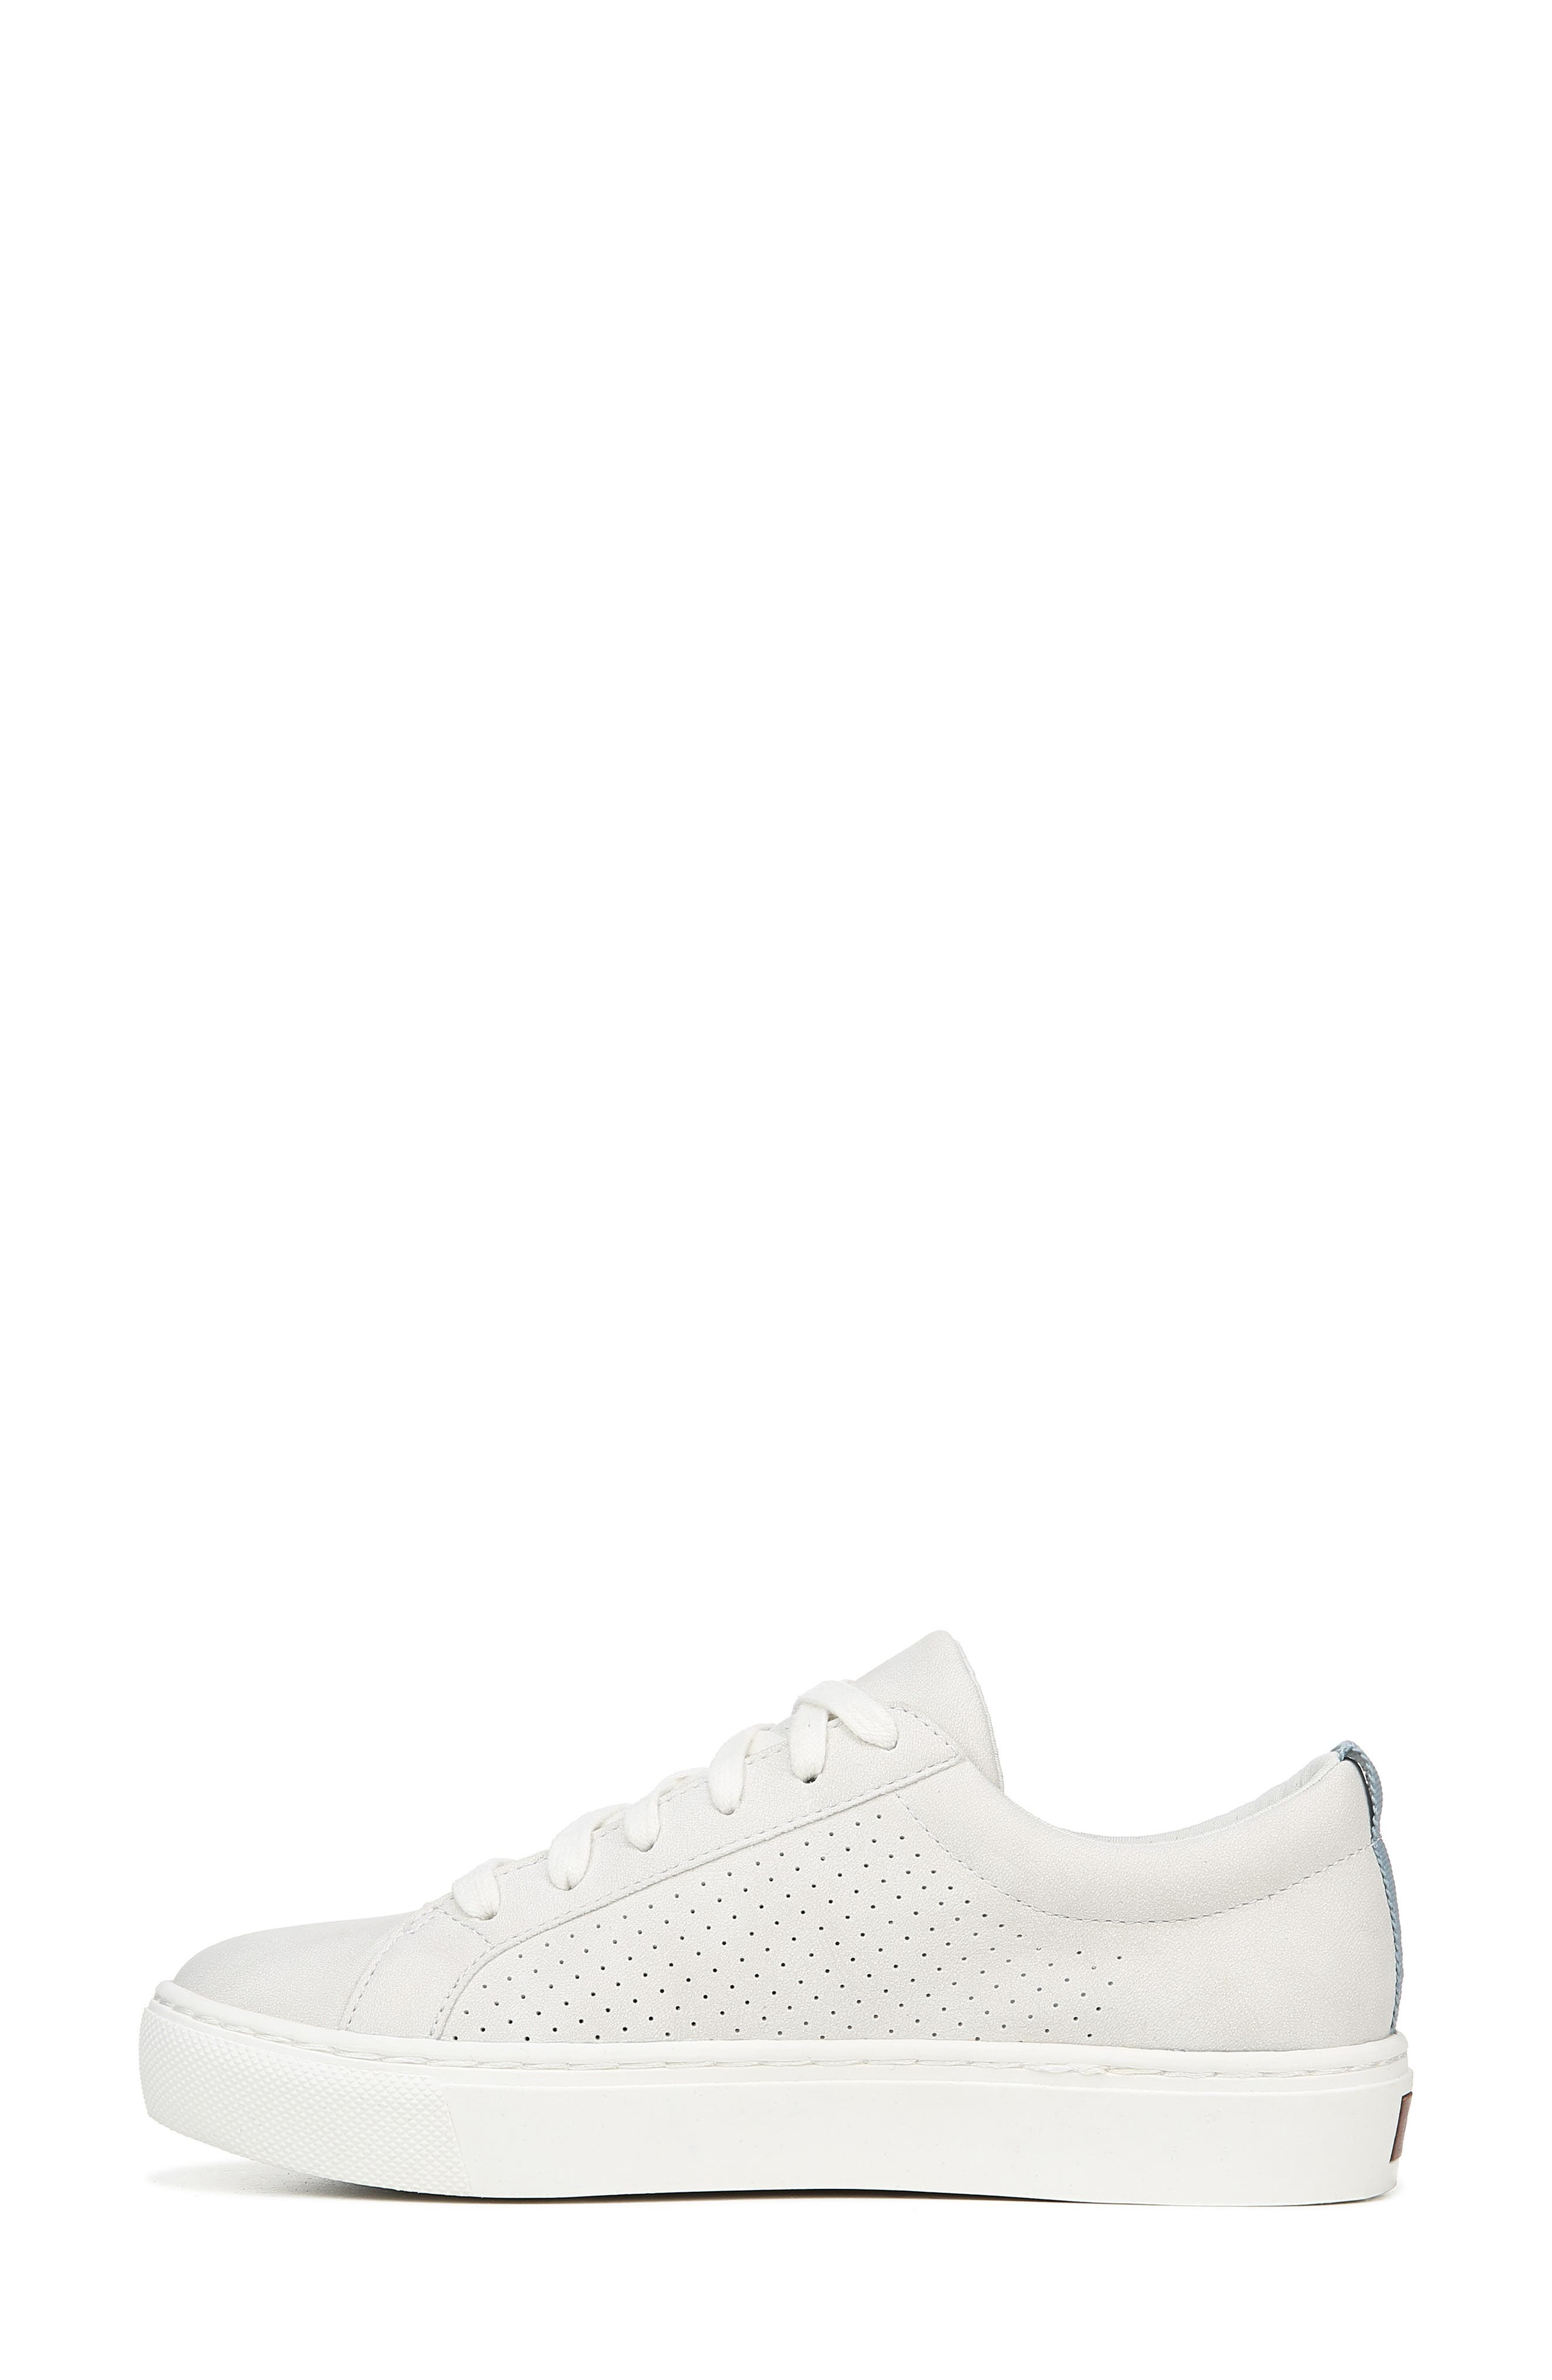 DR. SCHOLL'S, No Bad Vibes Sneaker, Alternate thumbnail 8, color, WHITE FAUX LEATHER